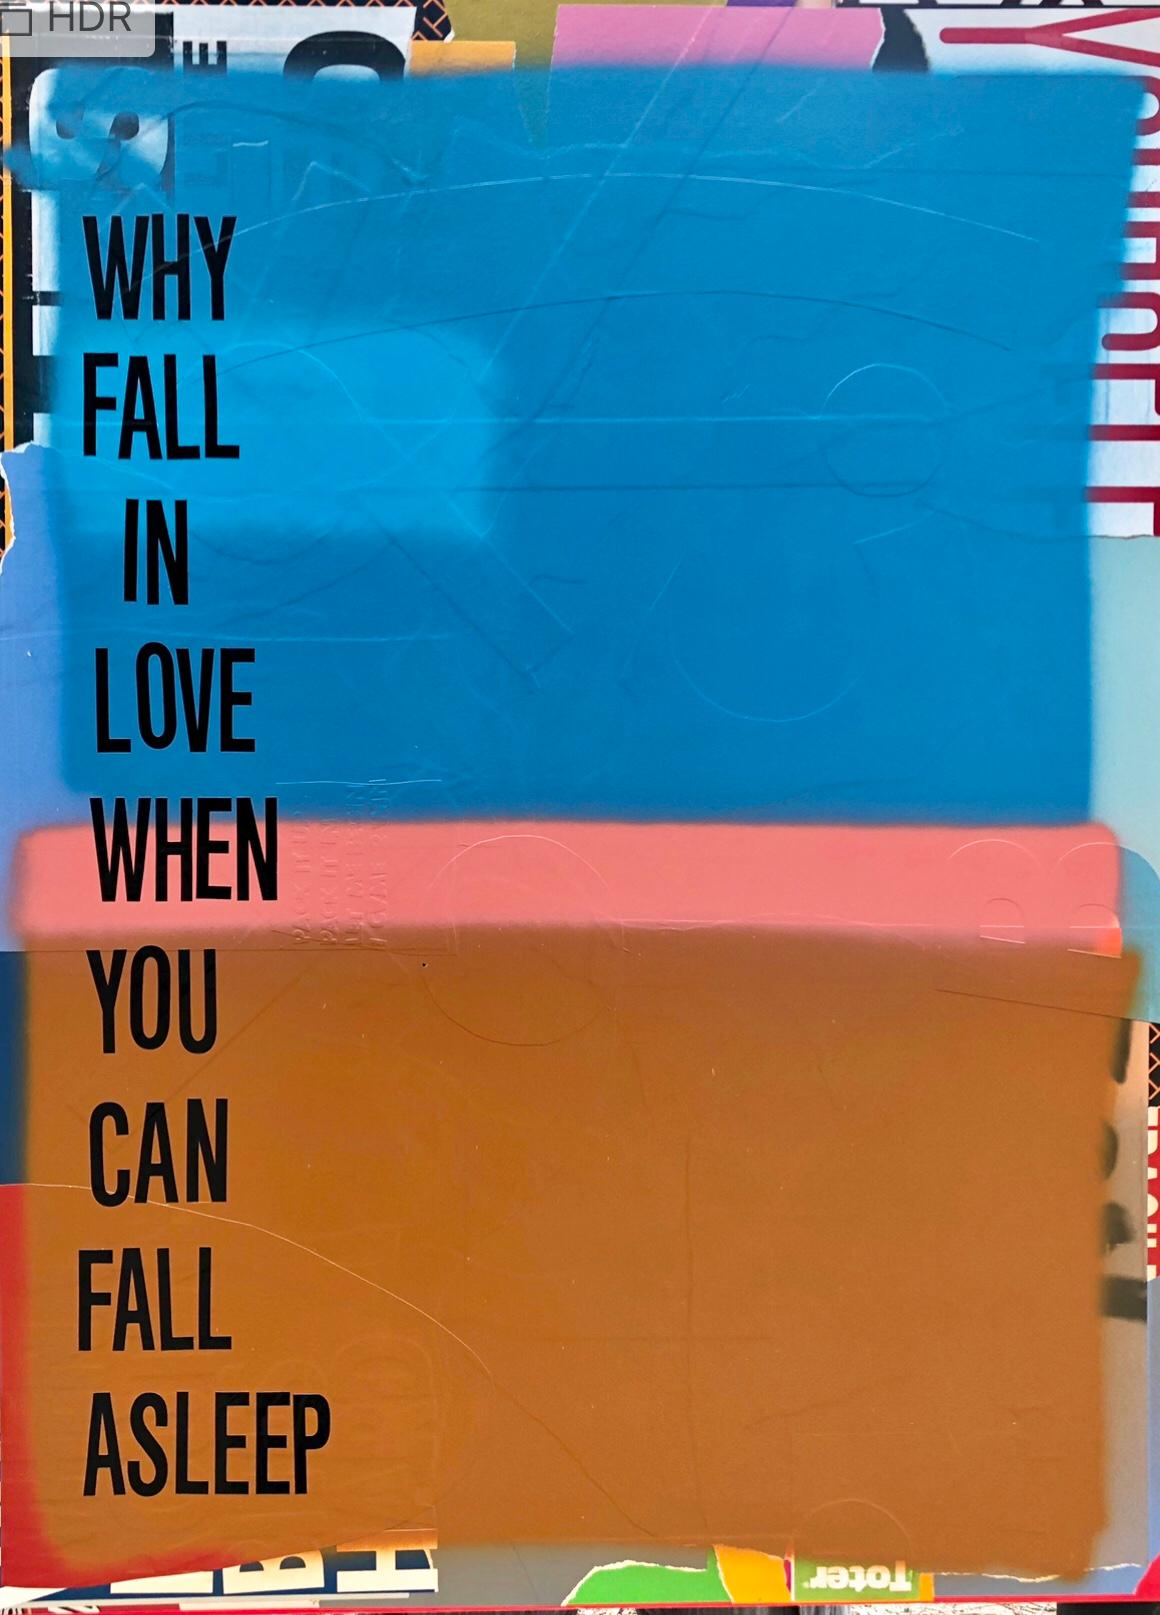 Mixed Media Painting Titled: Why Fall in Love